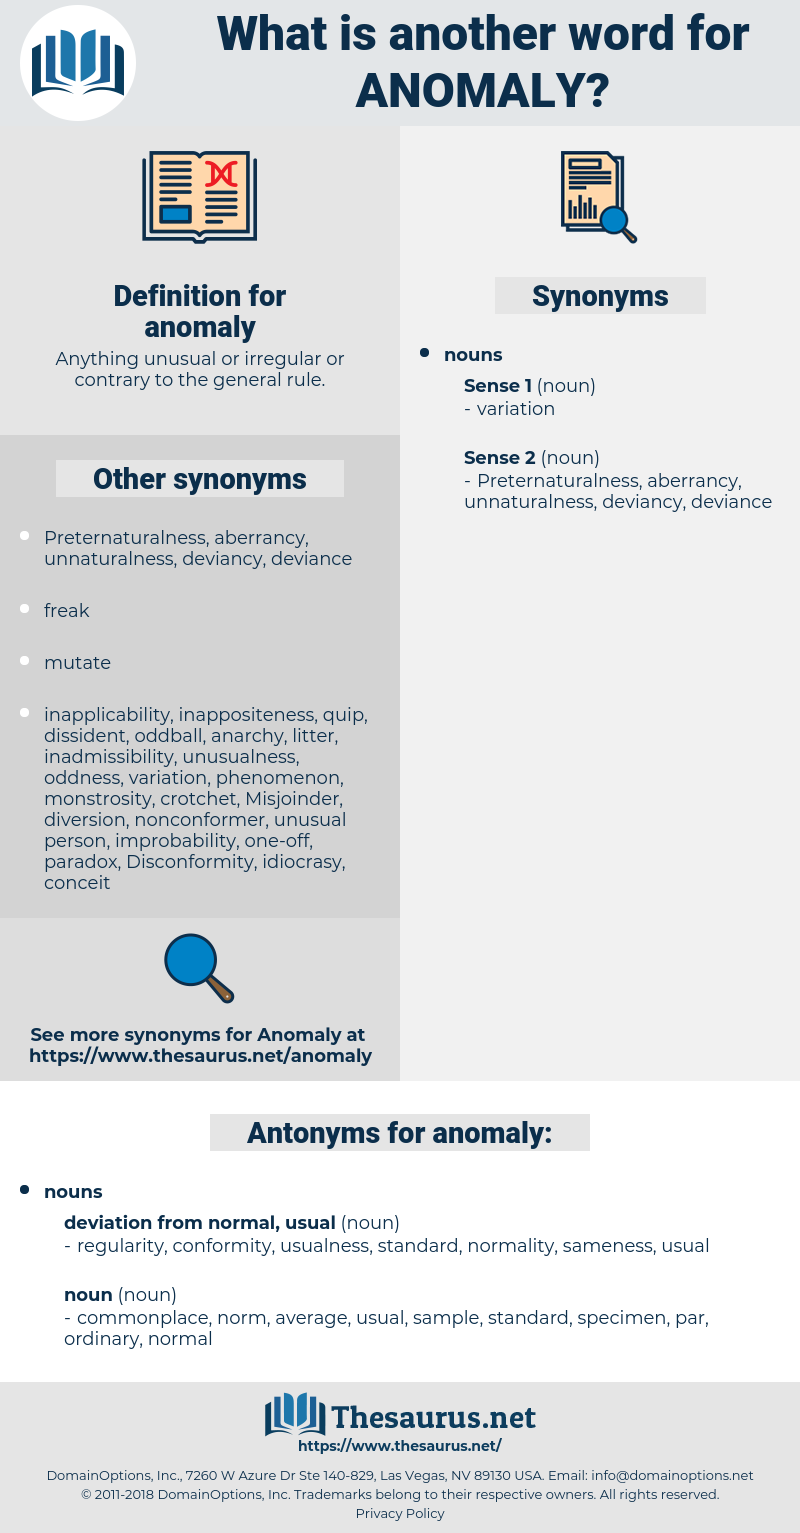 anomaly, synonym anomaly, another word for anomaly, words like anomaly, thesaurus anomaly